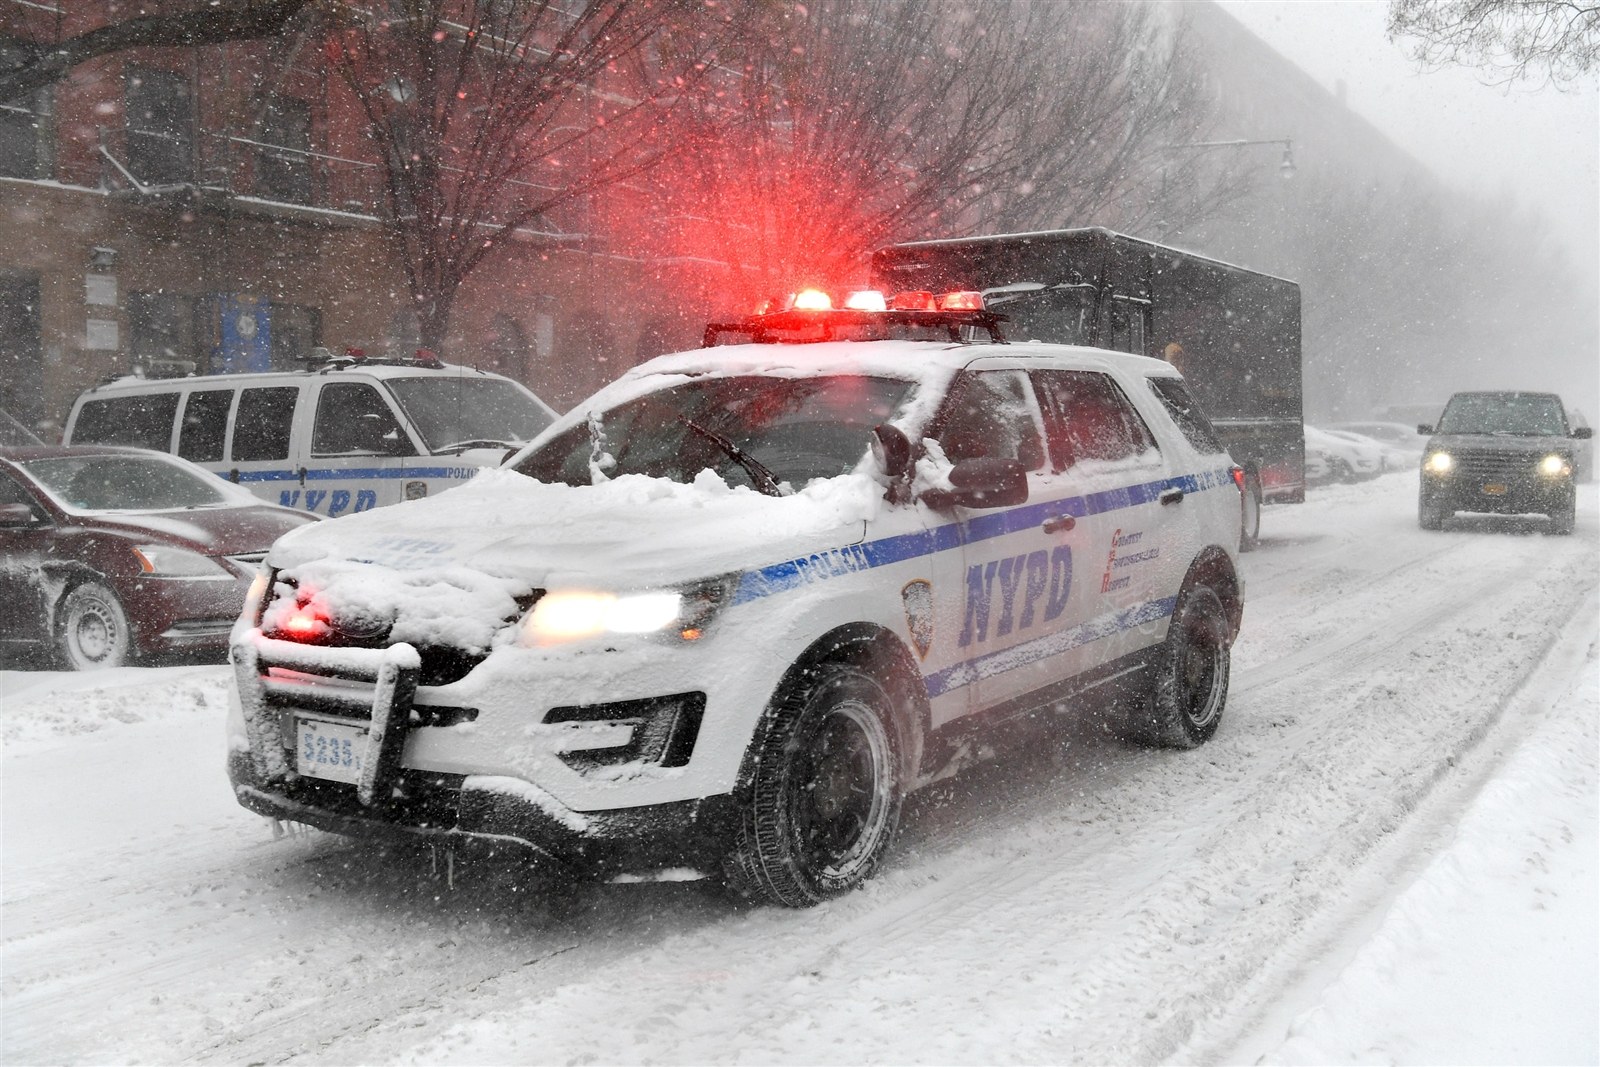 A New York Police Department vehicle drives through Harlem during a snow storm on January 4, 2018 in New York City. As a major winter storm moves up the Northeast corridor, New York City is under a winter storm warning and forecasts are calling for six to eight inches of snow.